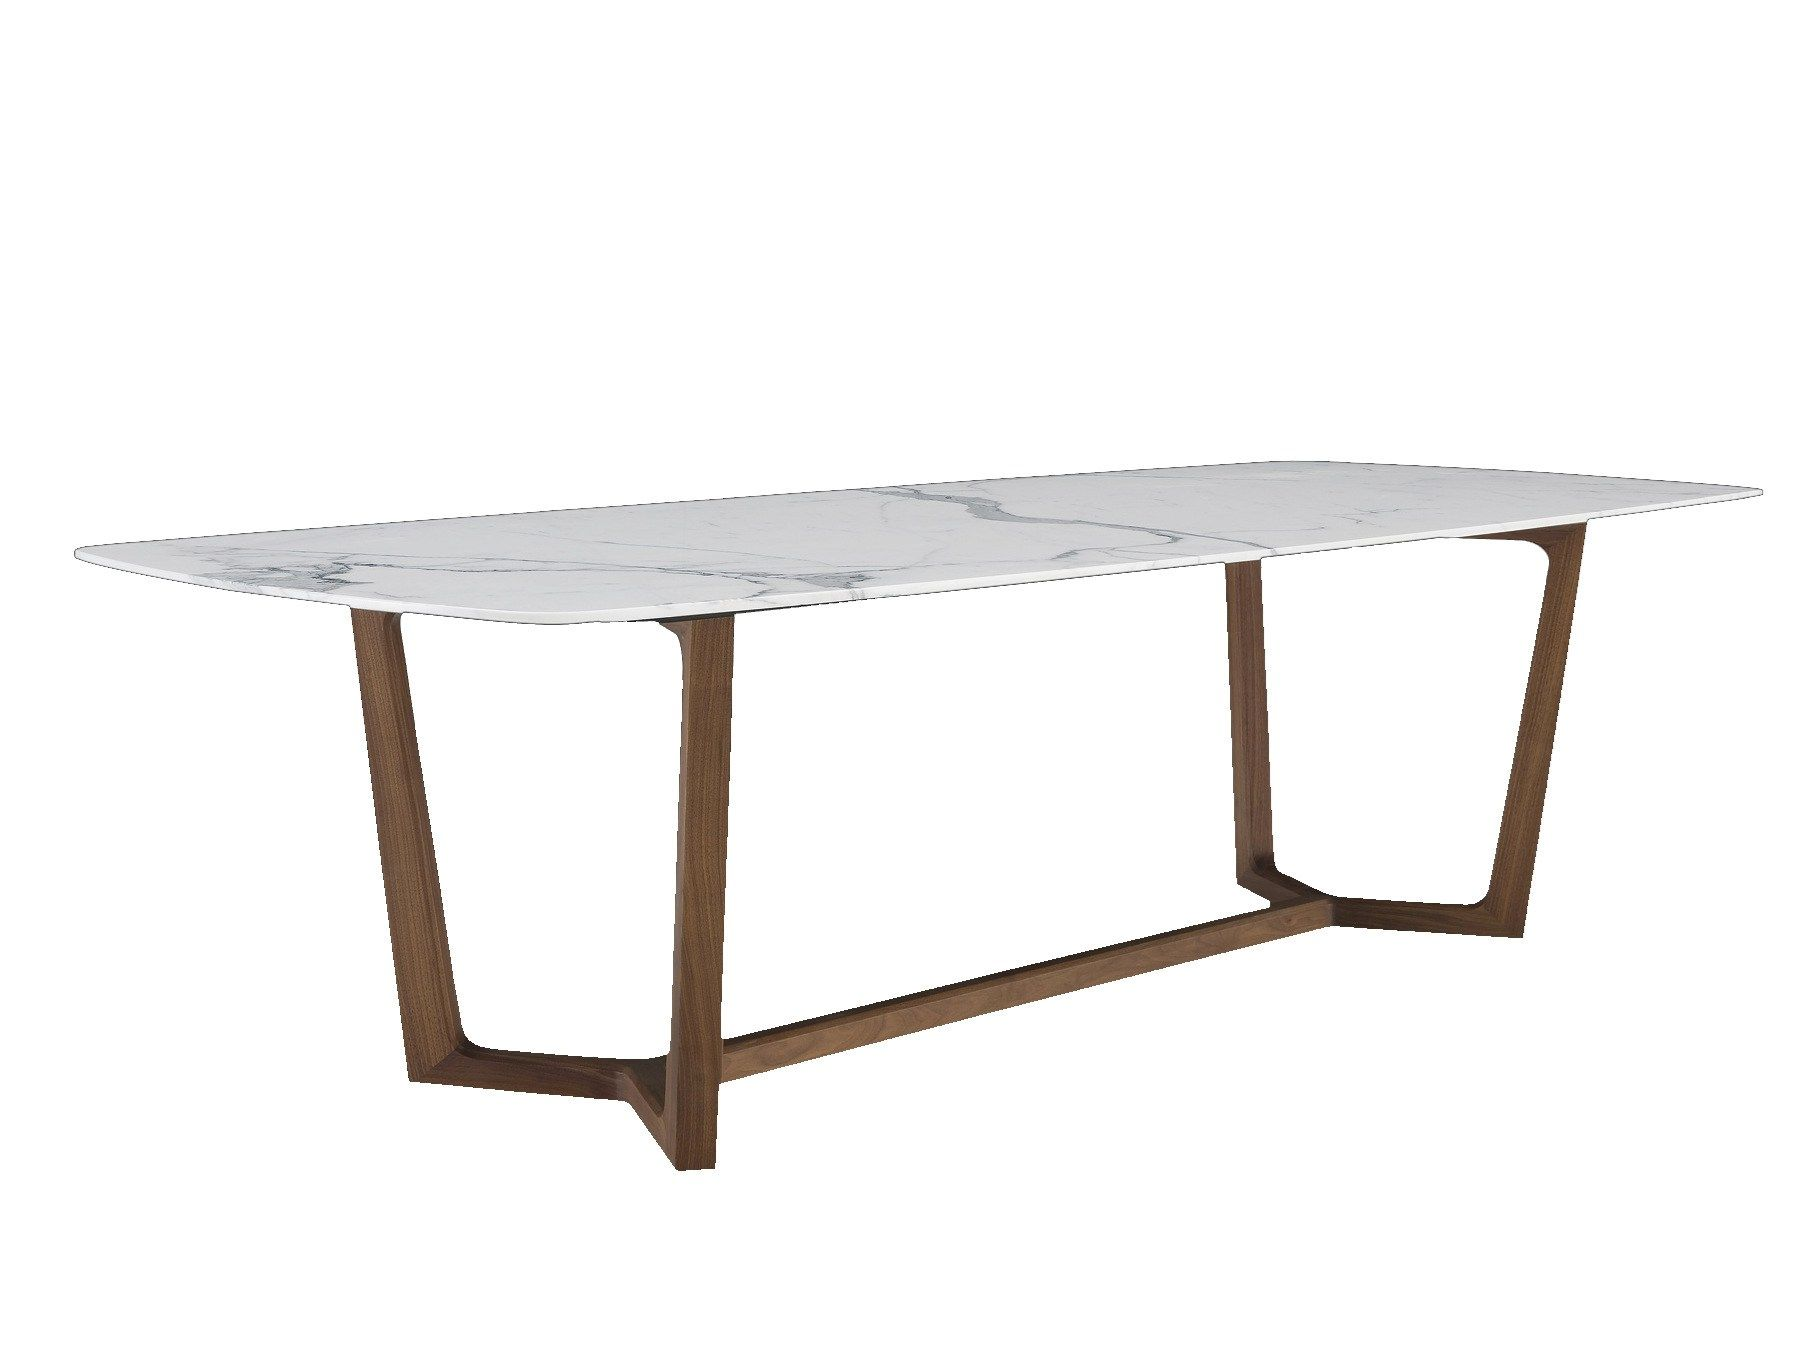 Download The Catalogue And Request Prices Of Concorde Rectangular Table By Poliform Rectangular Marble Table De Marble Tables Design Rectangular Table Table